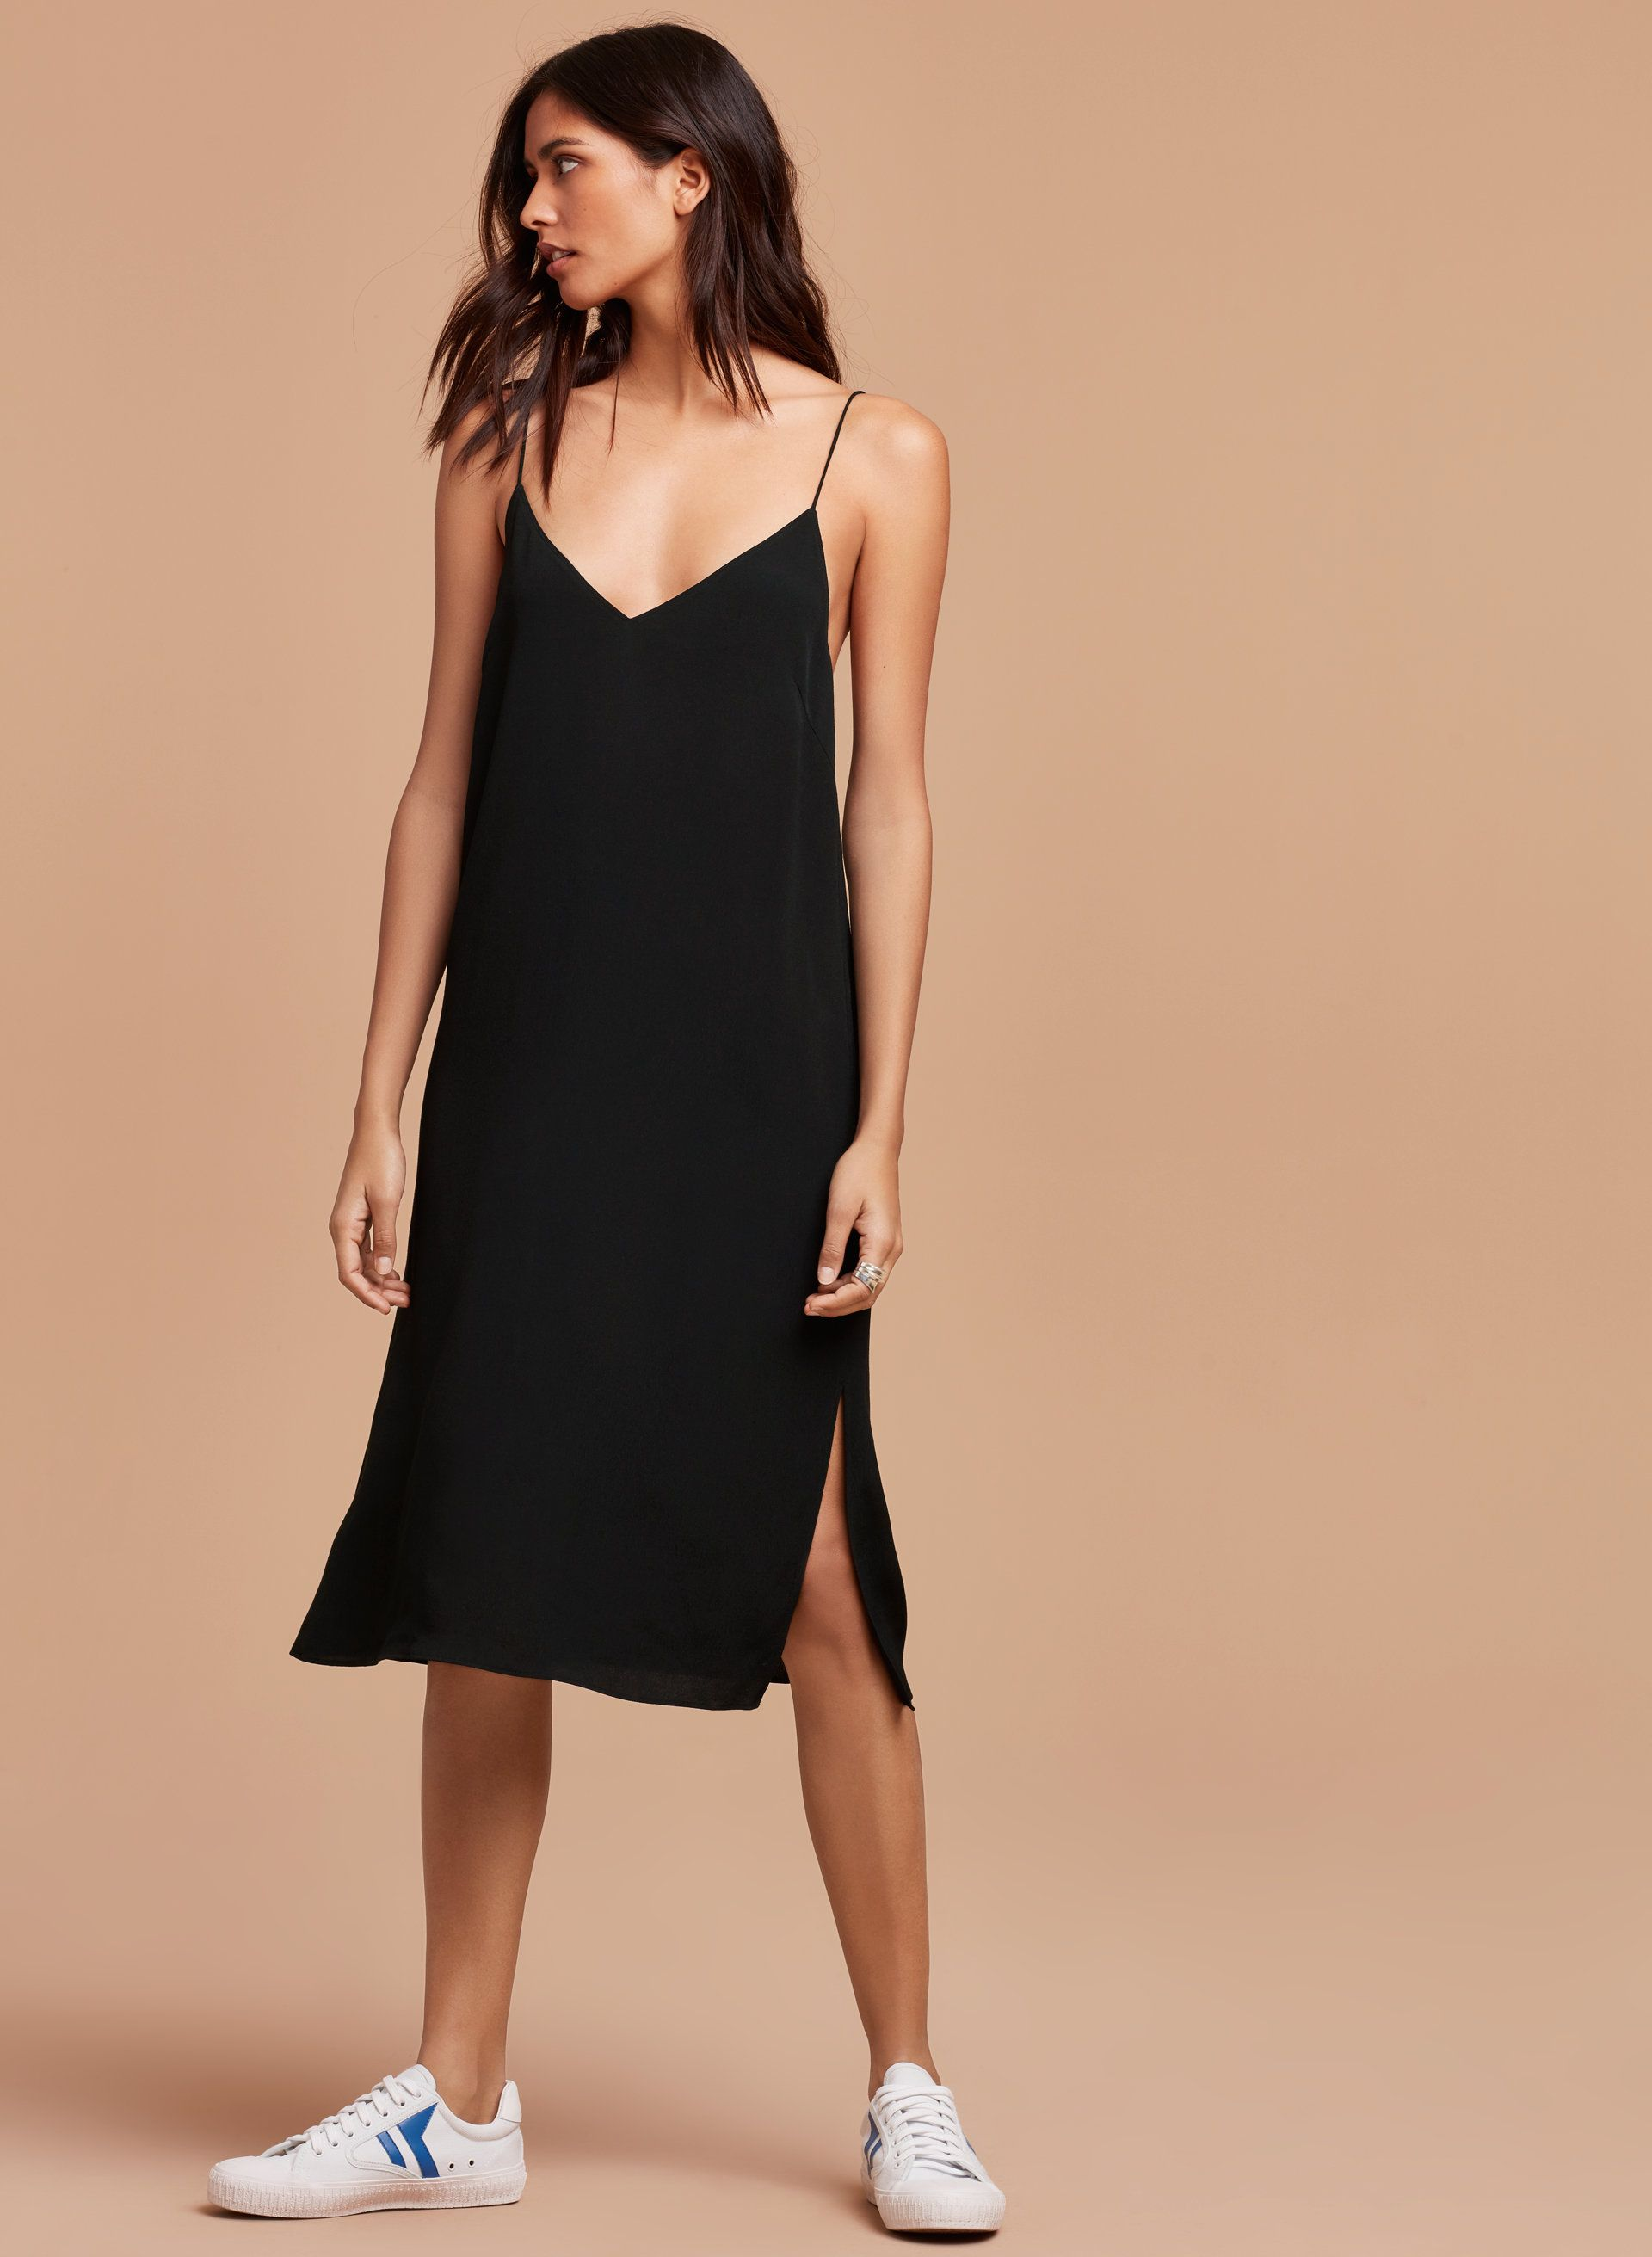 Felicity dress | Business casual, Dress codes and Spring